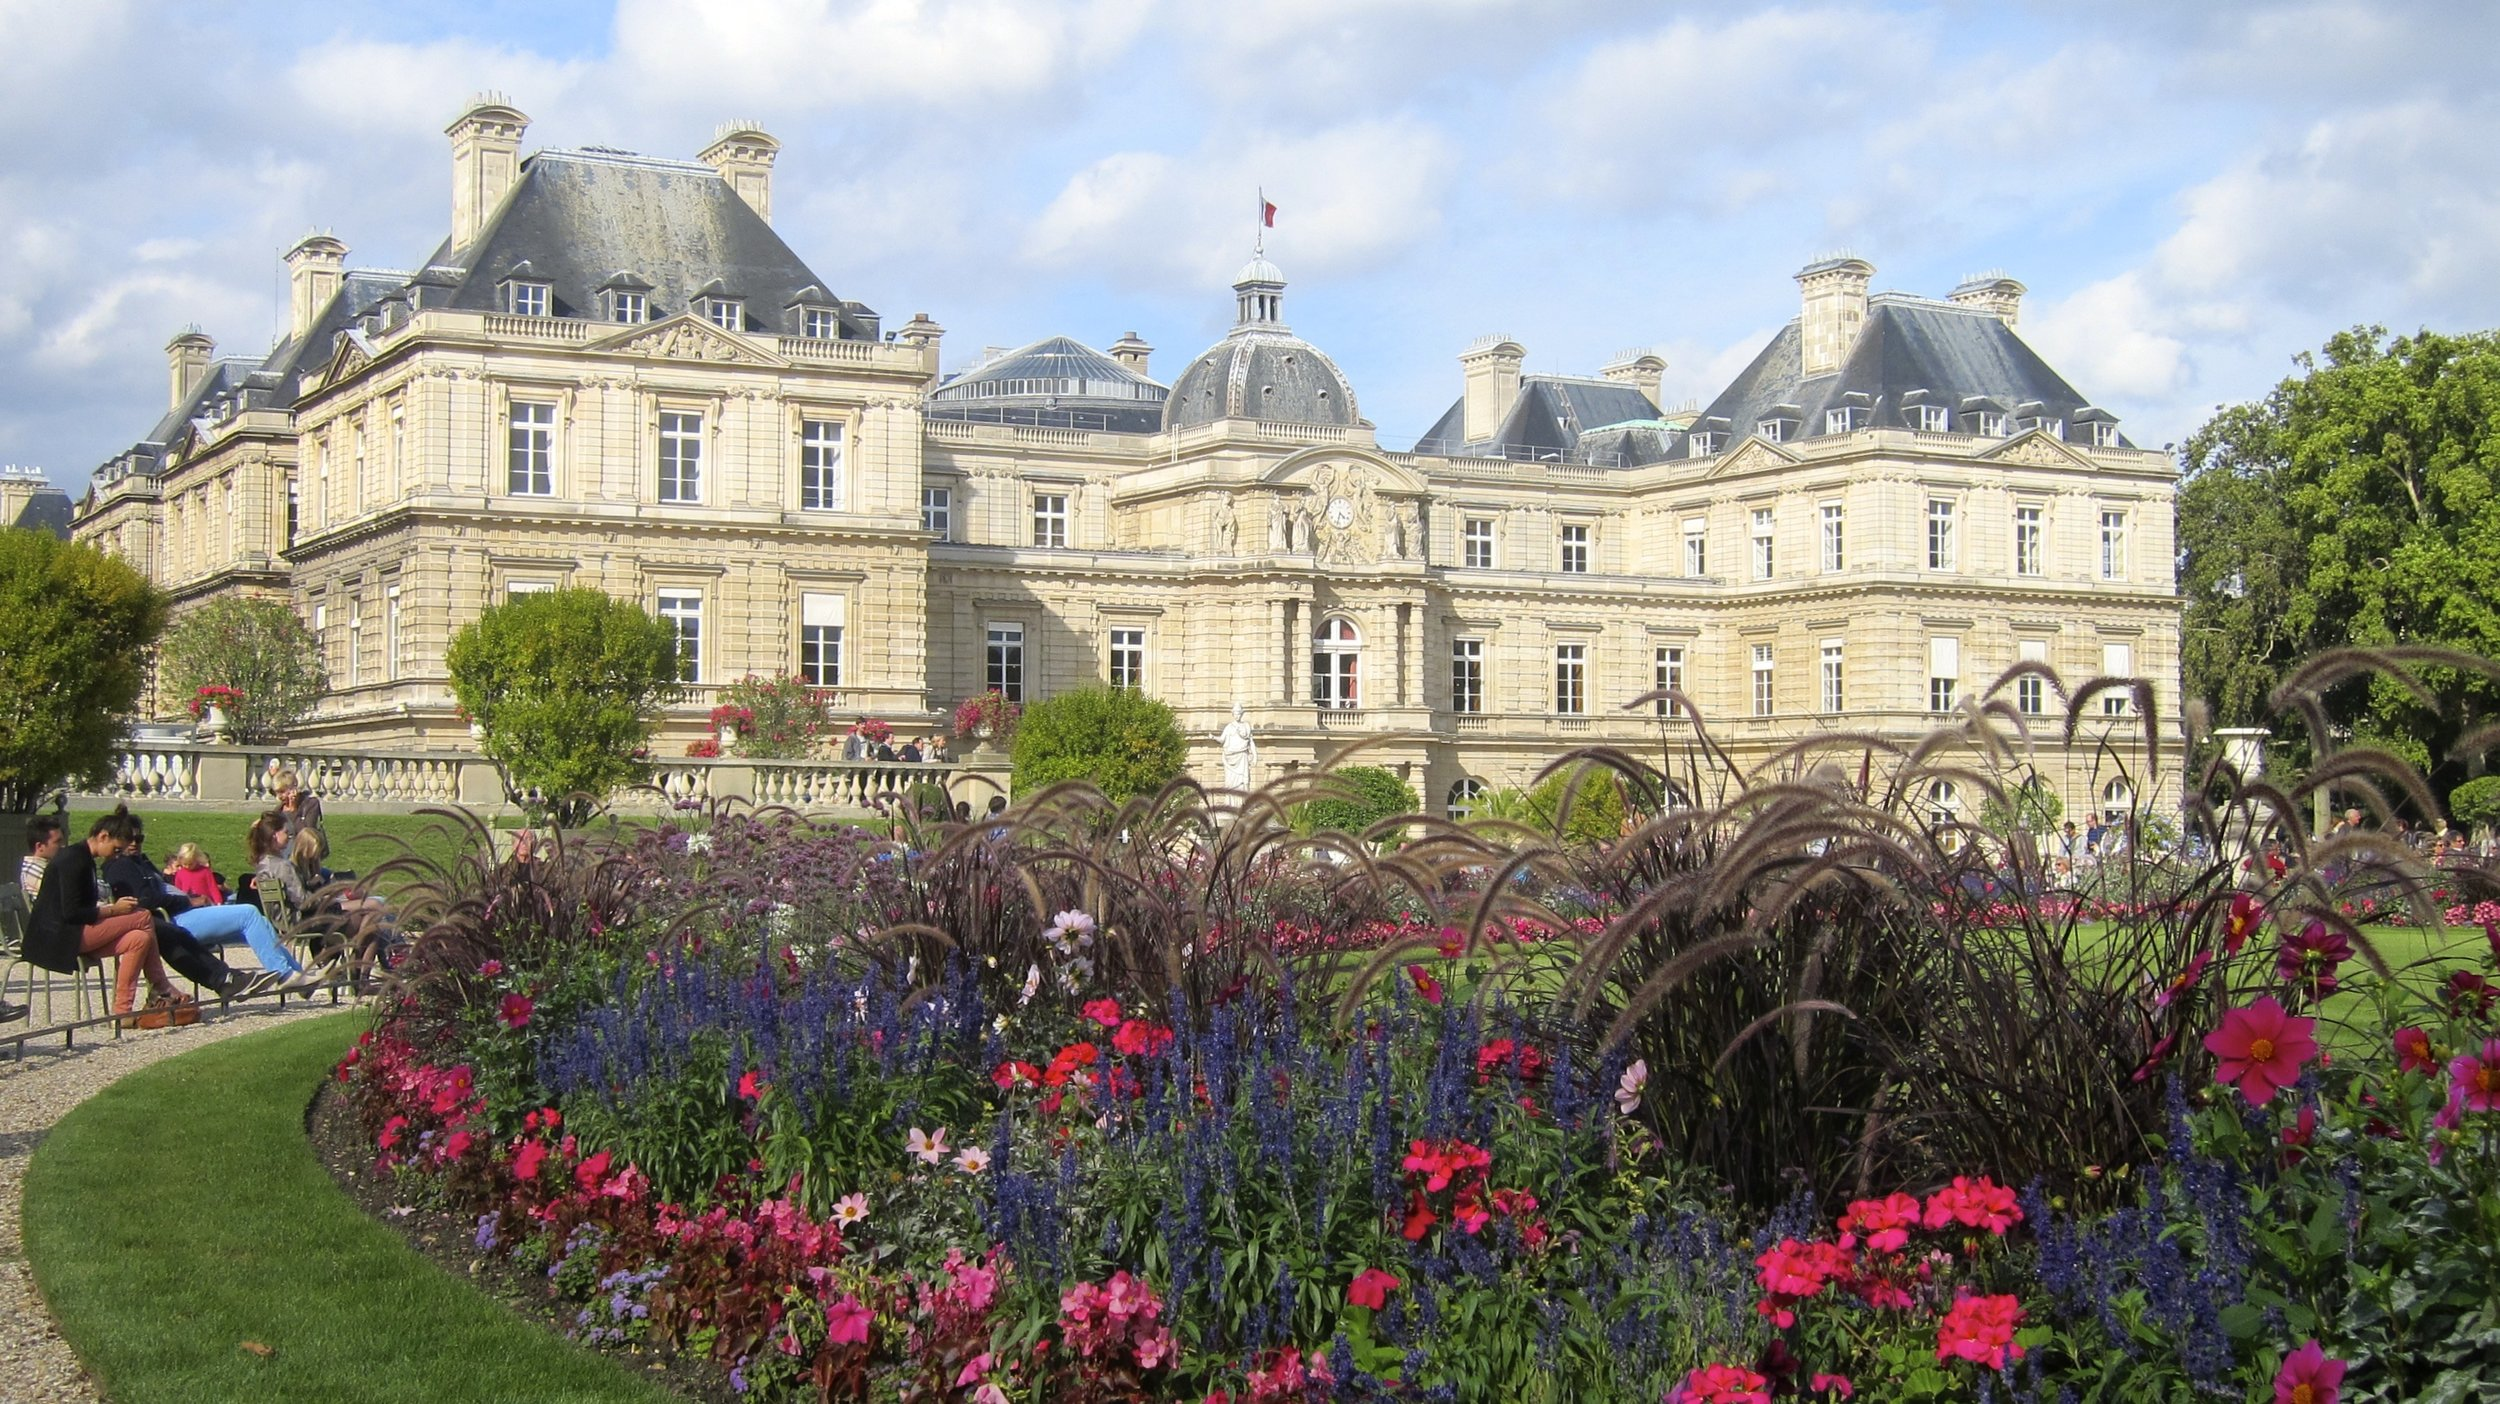 Luxembourg Gardens - a peaceful and beautiful oasis in Paris.